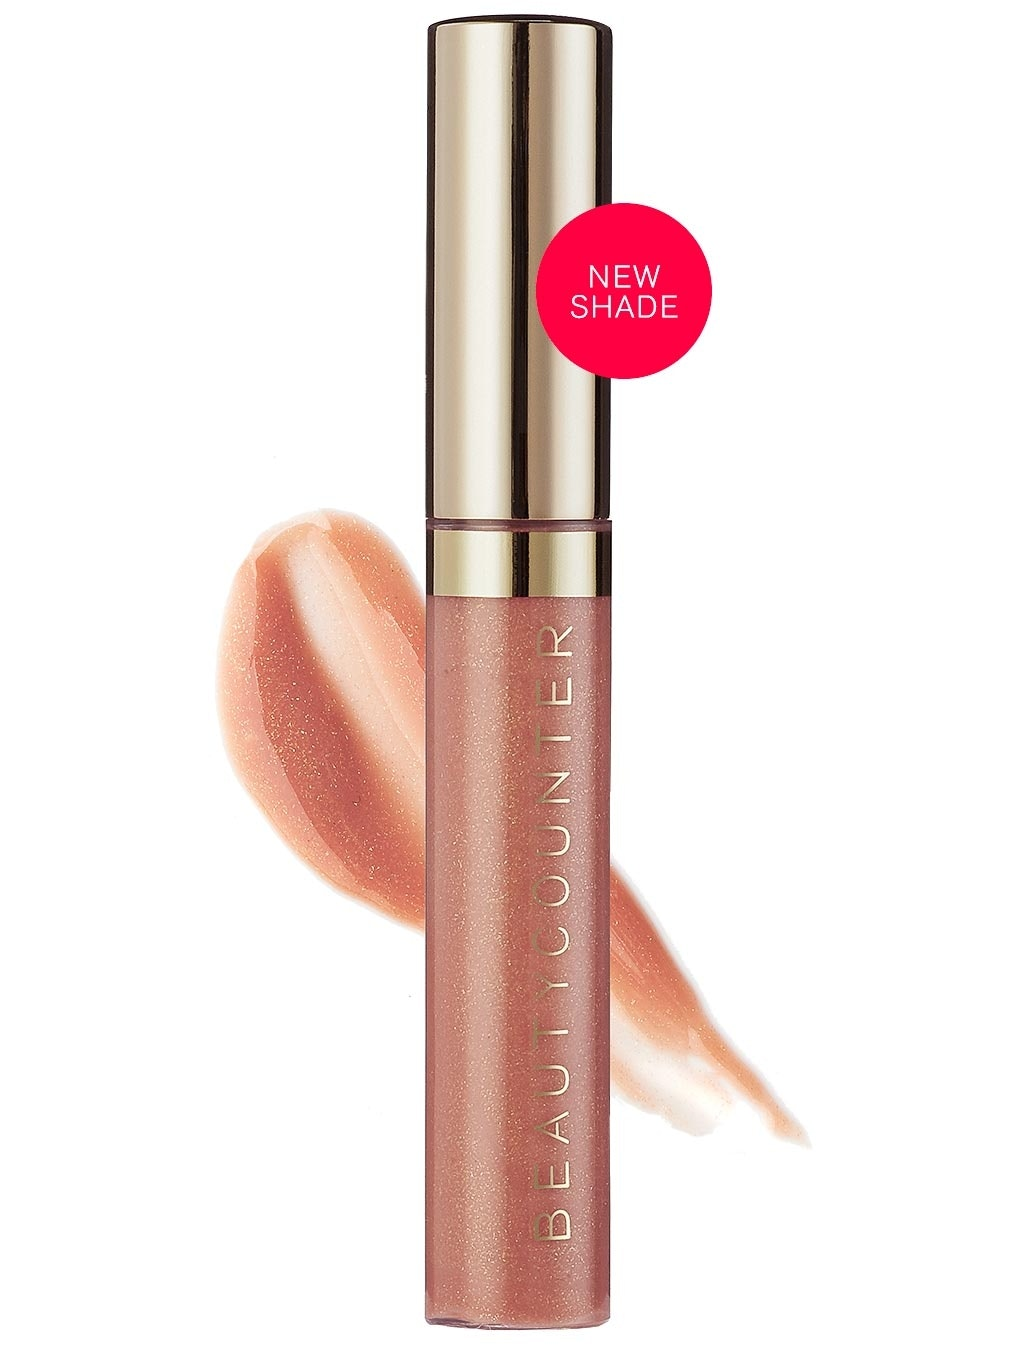 Beauty counter lip gloss beauty products The Wardrobe Consultant